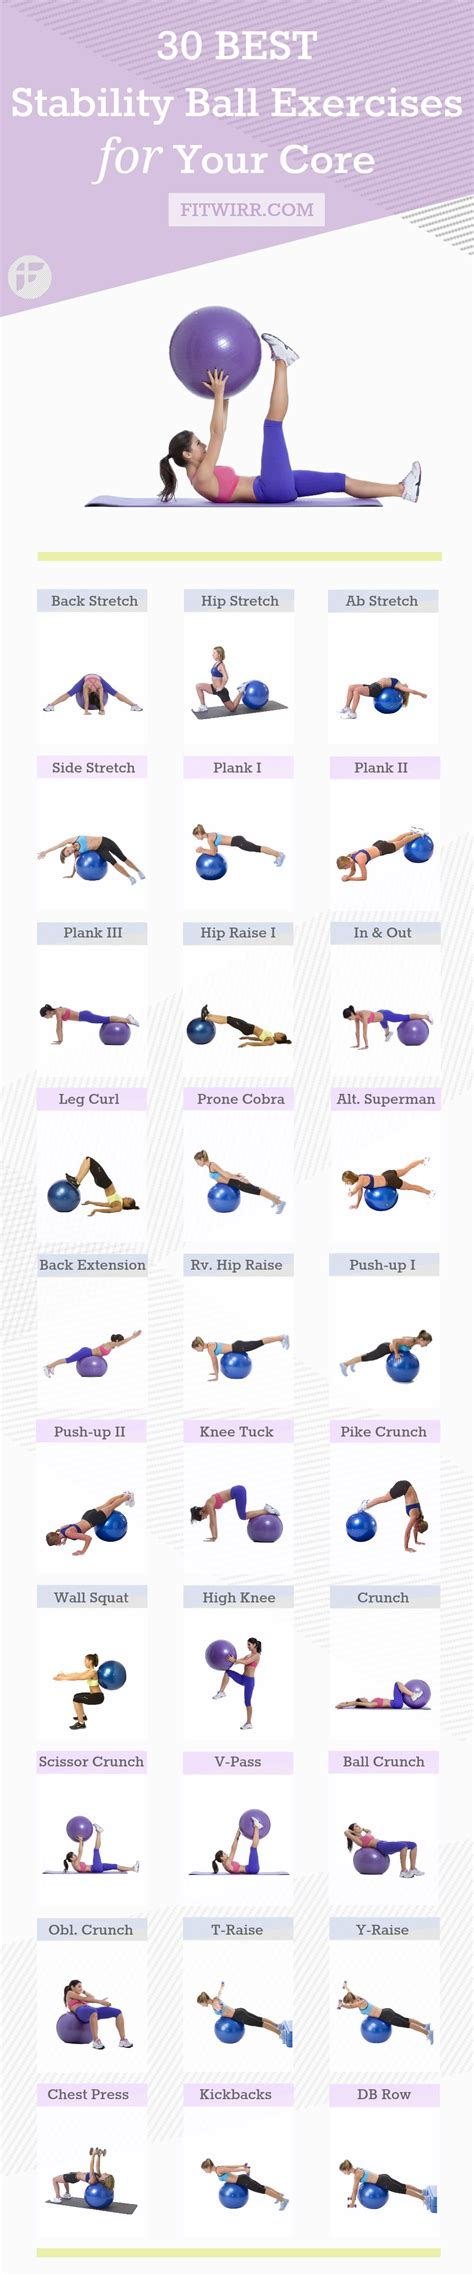 printable exercise ball workouts 30 best exercise ball workouts to work your whole body